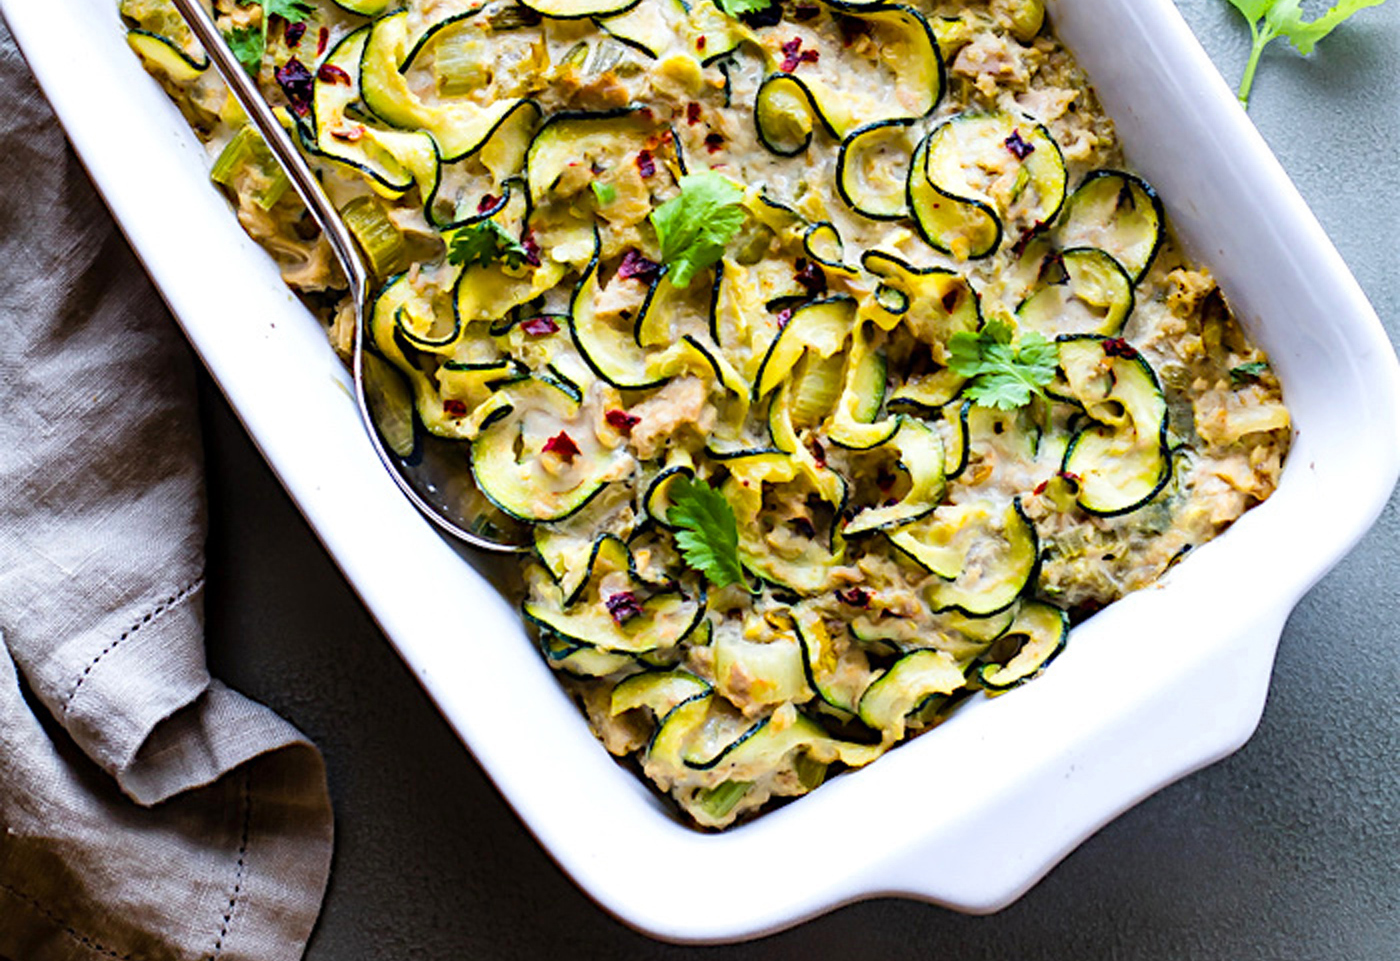 Paleo meal plan. Zucchini bake. Family meal ideas.